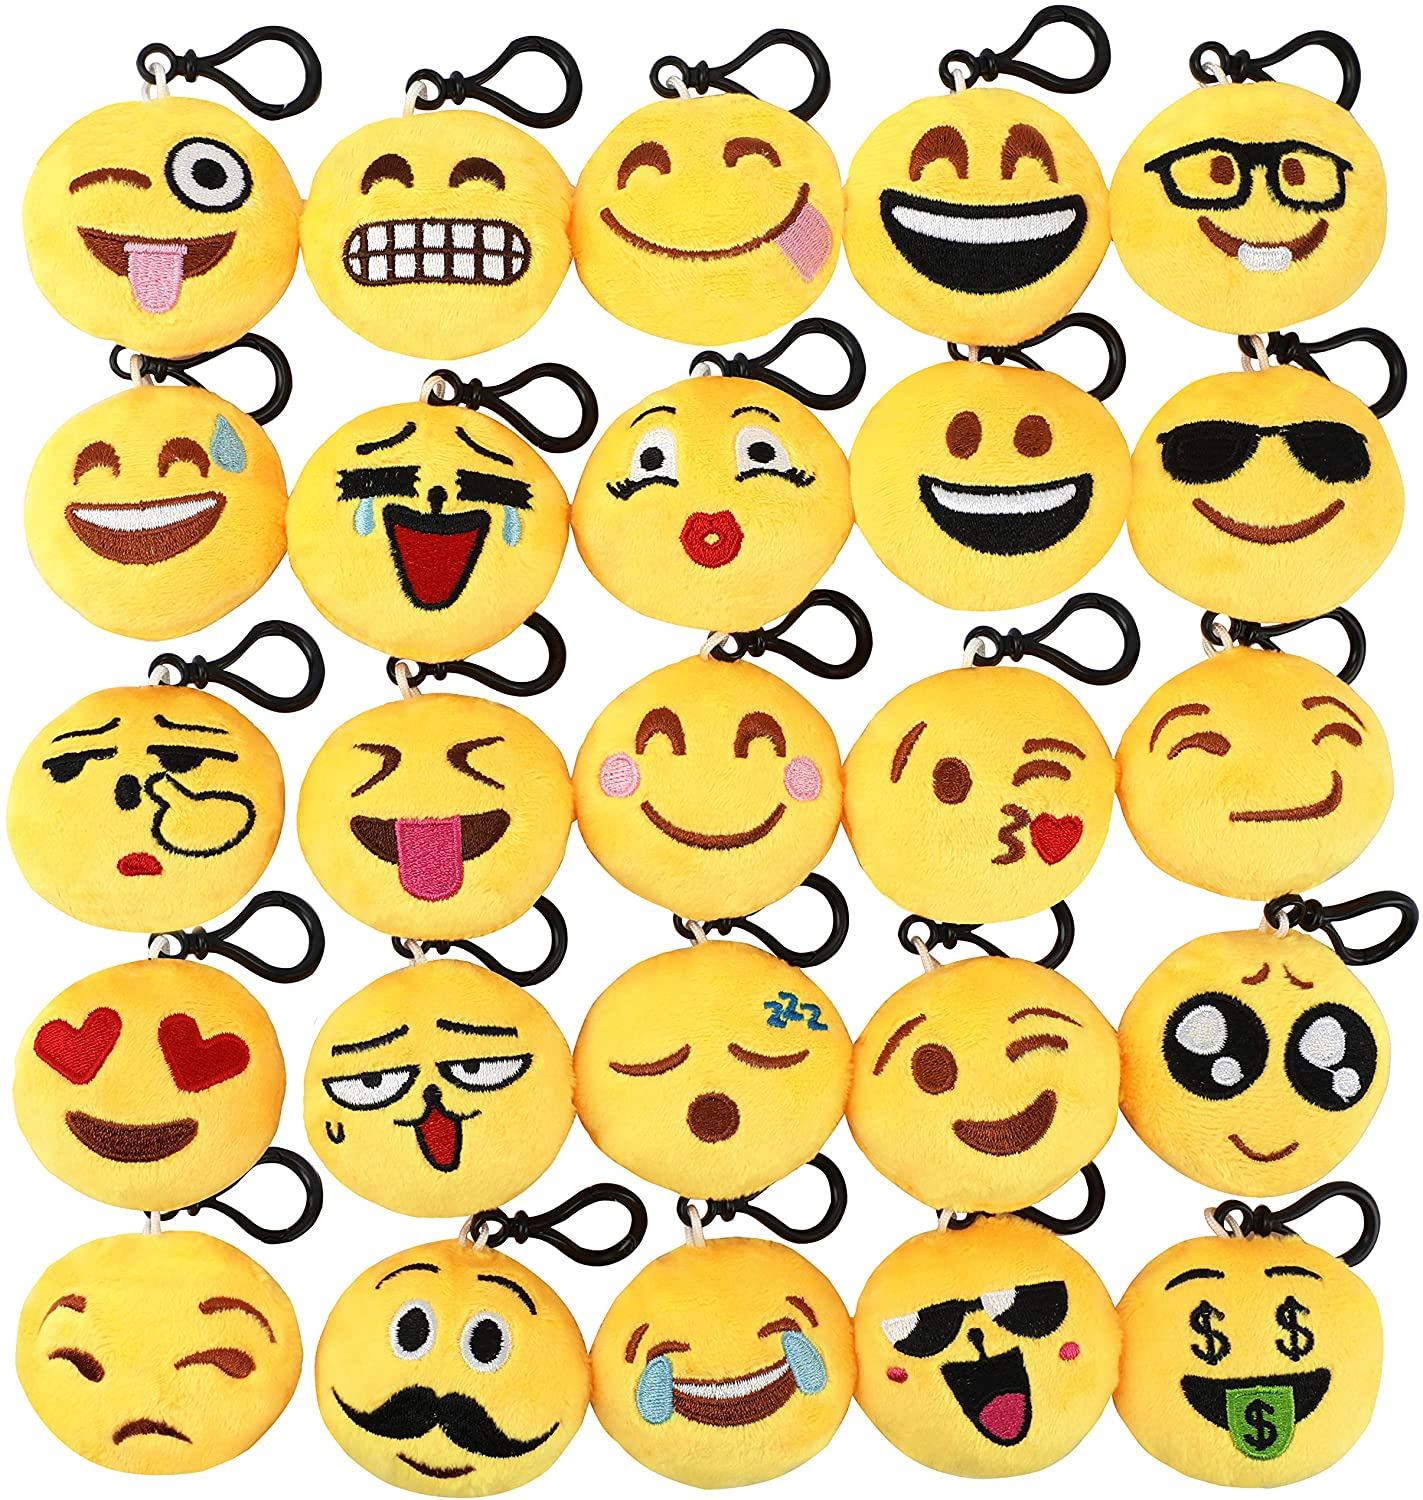 Lenink Emoji Party Supplies,25 Pack Emoji Keychain,Mini Plush Emoji Pillows for Kids Birthday Party,Home Decoration,Classroom Rewards and Party Favors